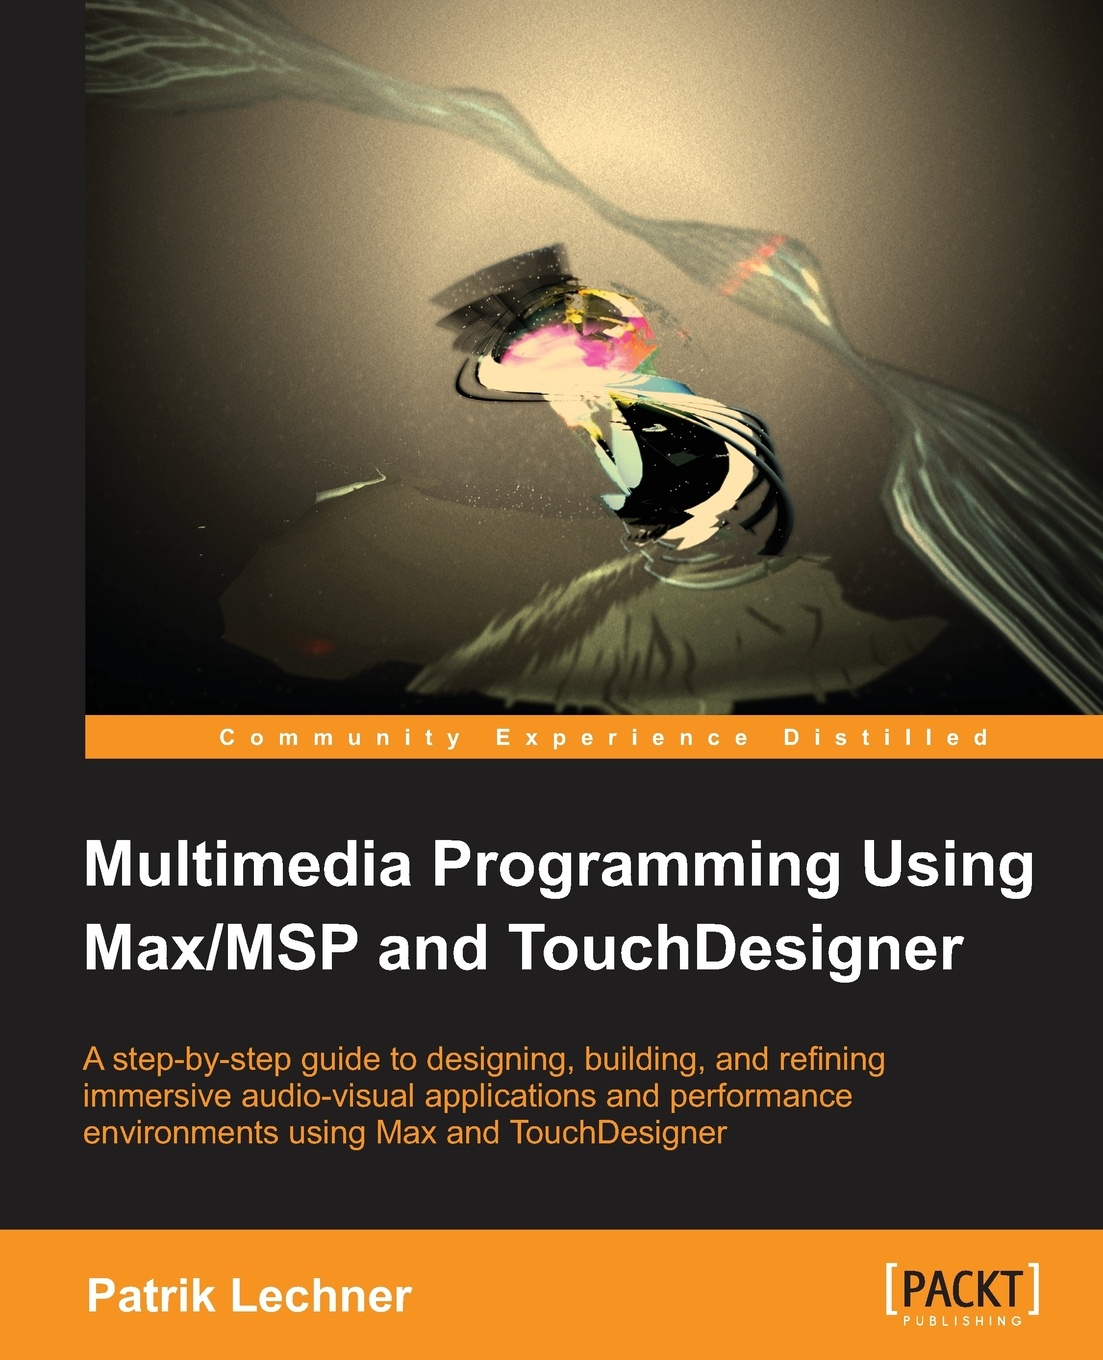 Patrik Lechner Multimedia Programming using Max/MSP and TouchDesigner